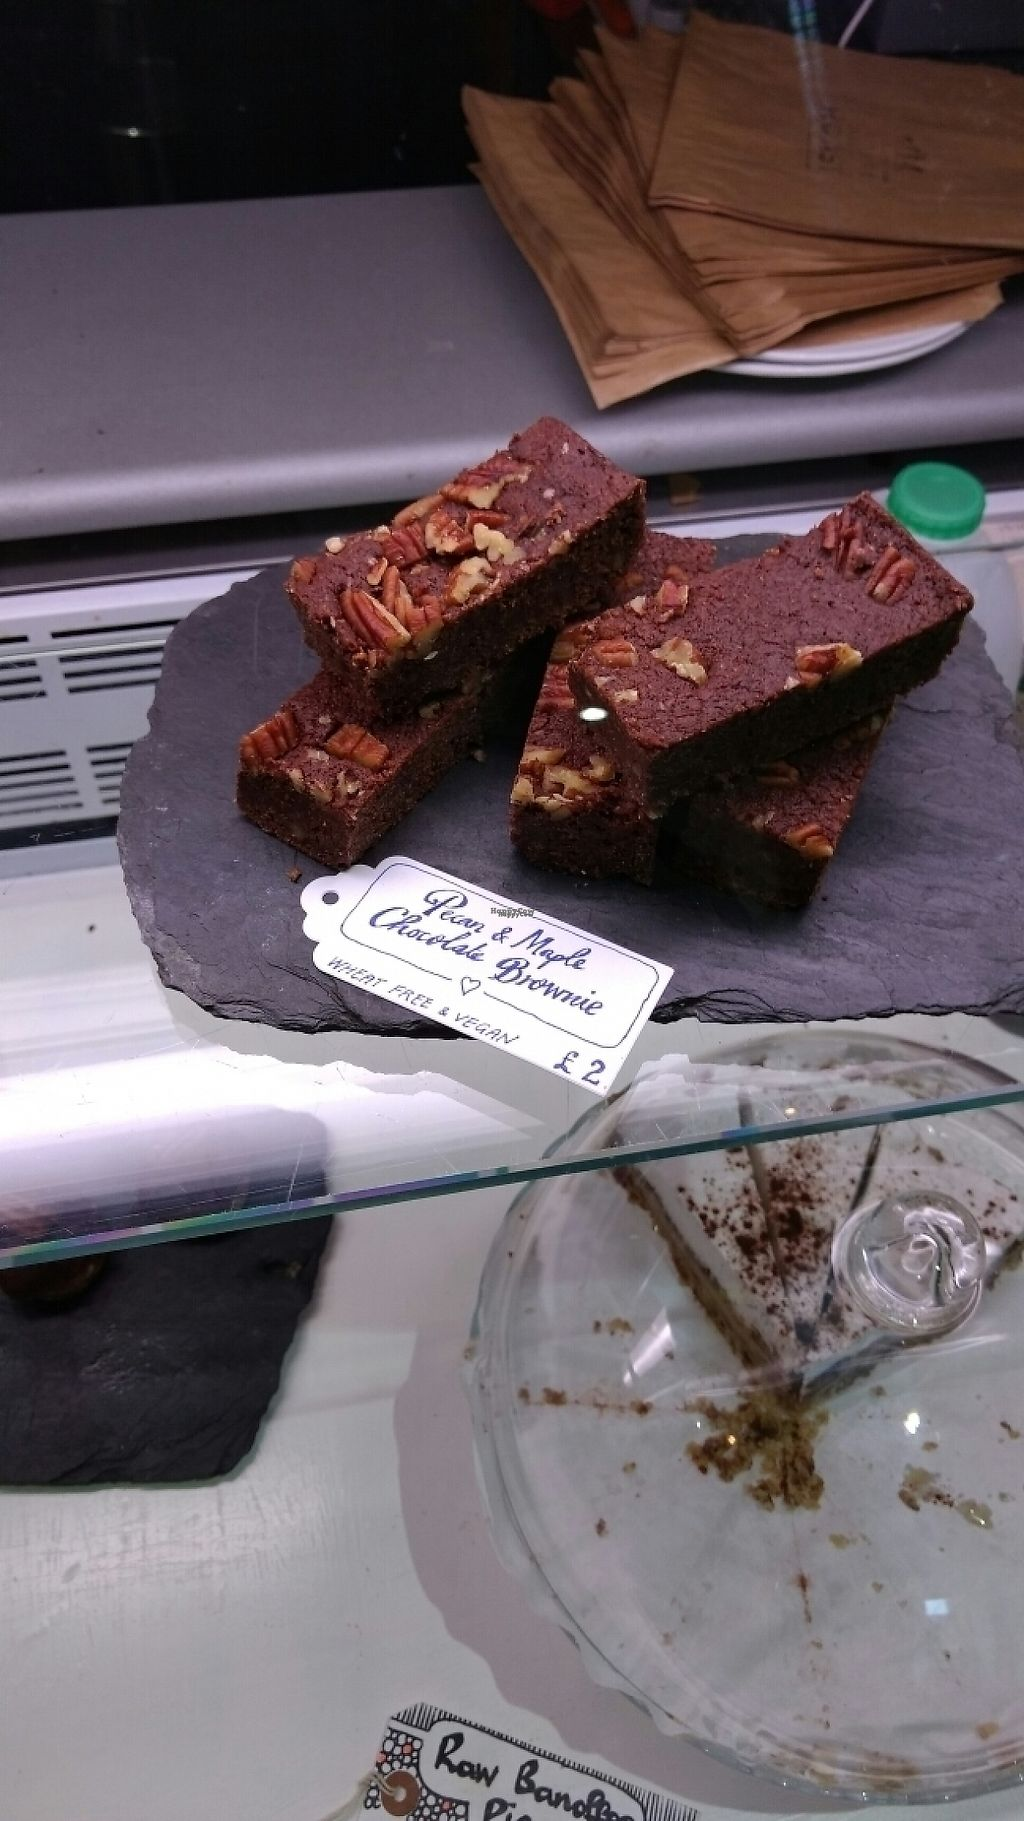 """Photo of Primal Roast  by <a href=""""/members/profile/craigmc"""">craigmc</a> <br/>I had the breakfast bar <br/> March 16, 2017  - <a href='/contact/abuse/image/85473/236962'>Report</a>"""